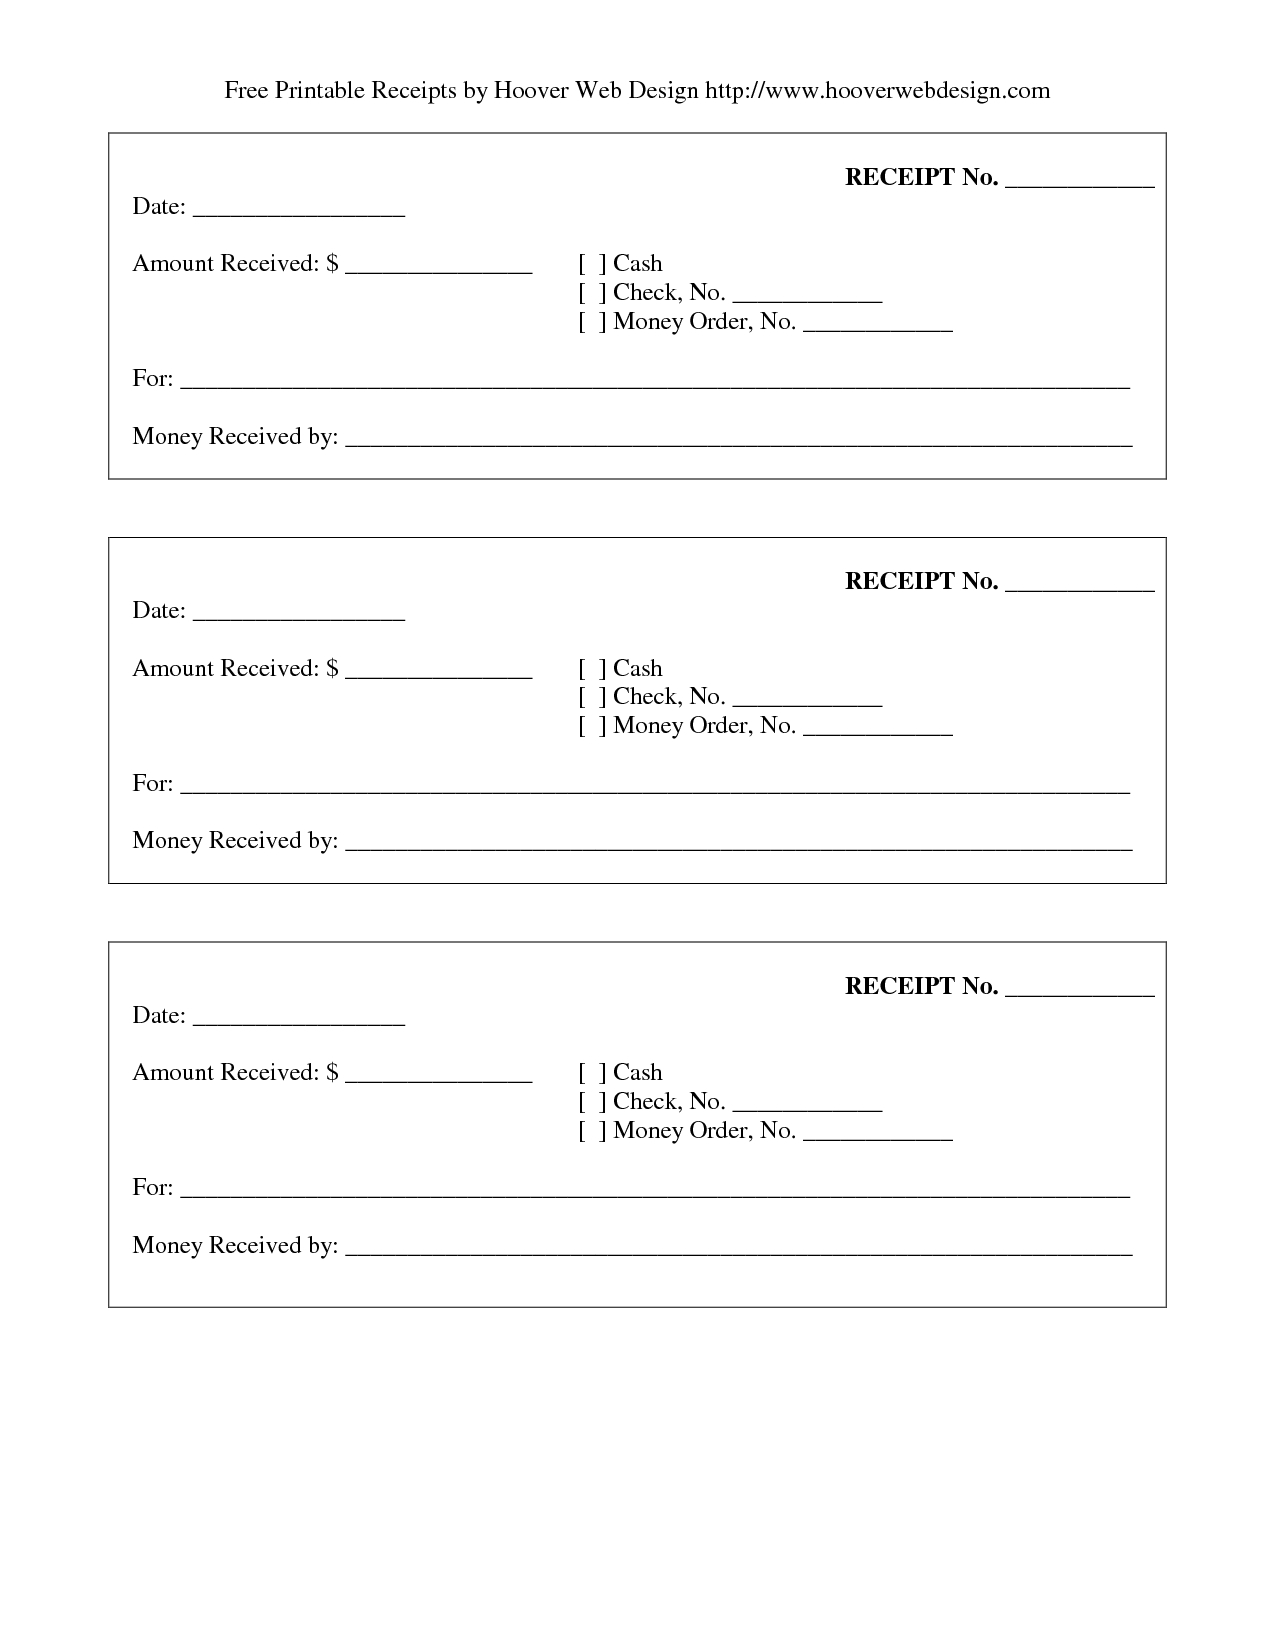 Print Receipt | Free Printable Receipt | Stuff To Buy | Pinterest - Free Printable Blank Receipt Form